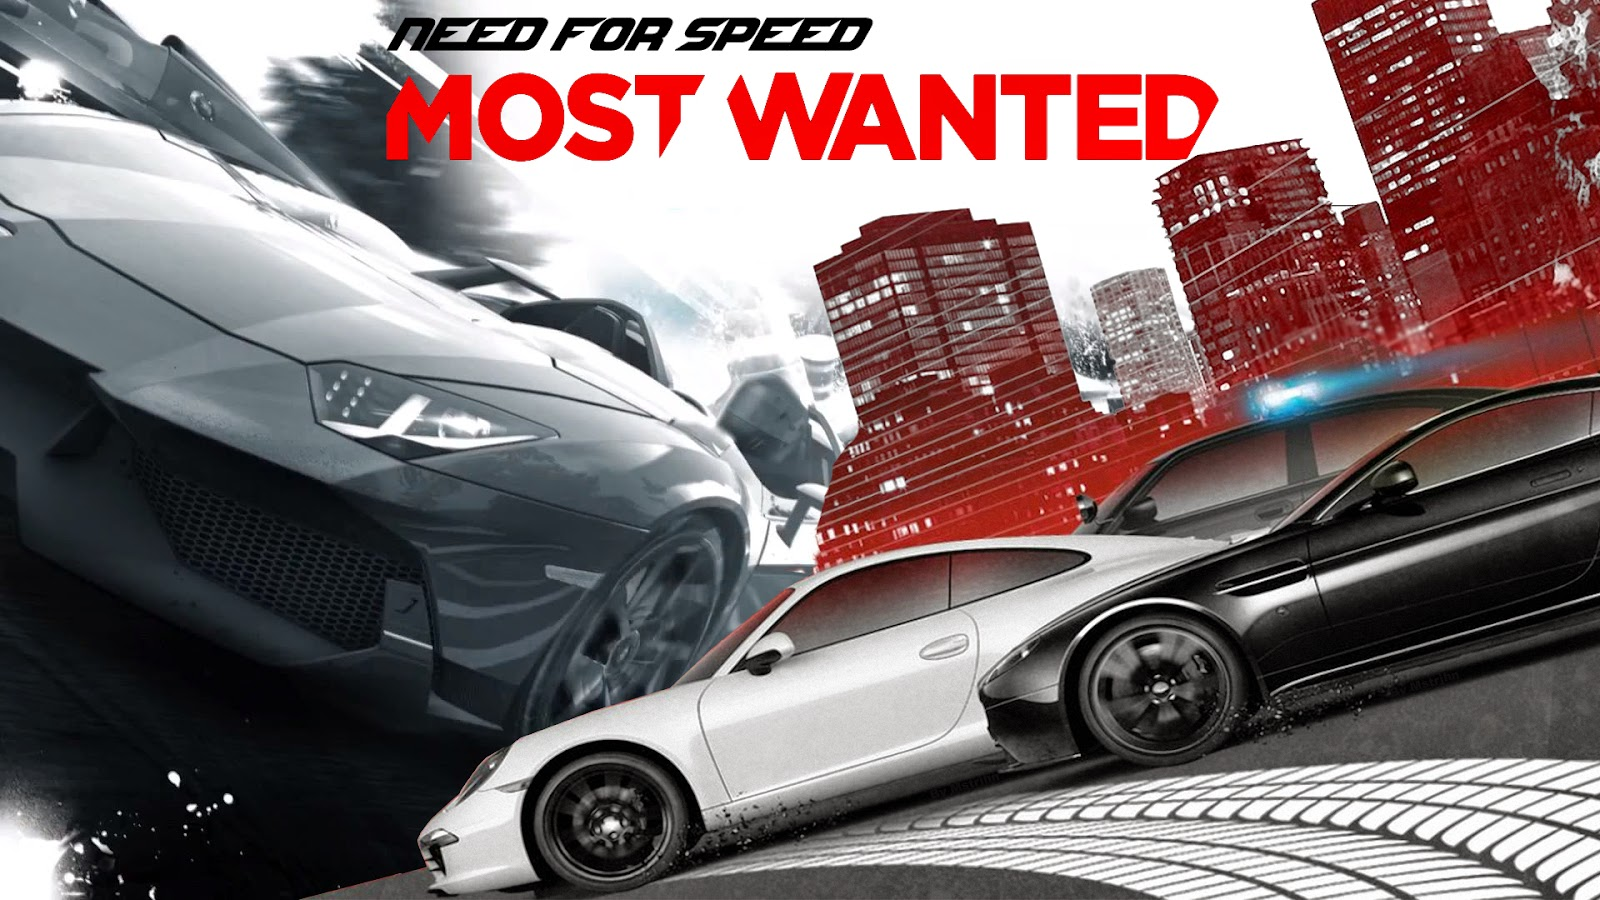 Need For Speed Most Wanted Gratis In Versione Pc